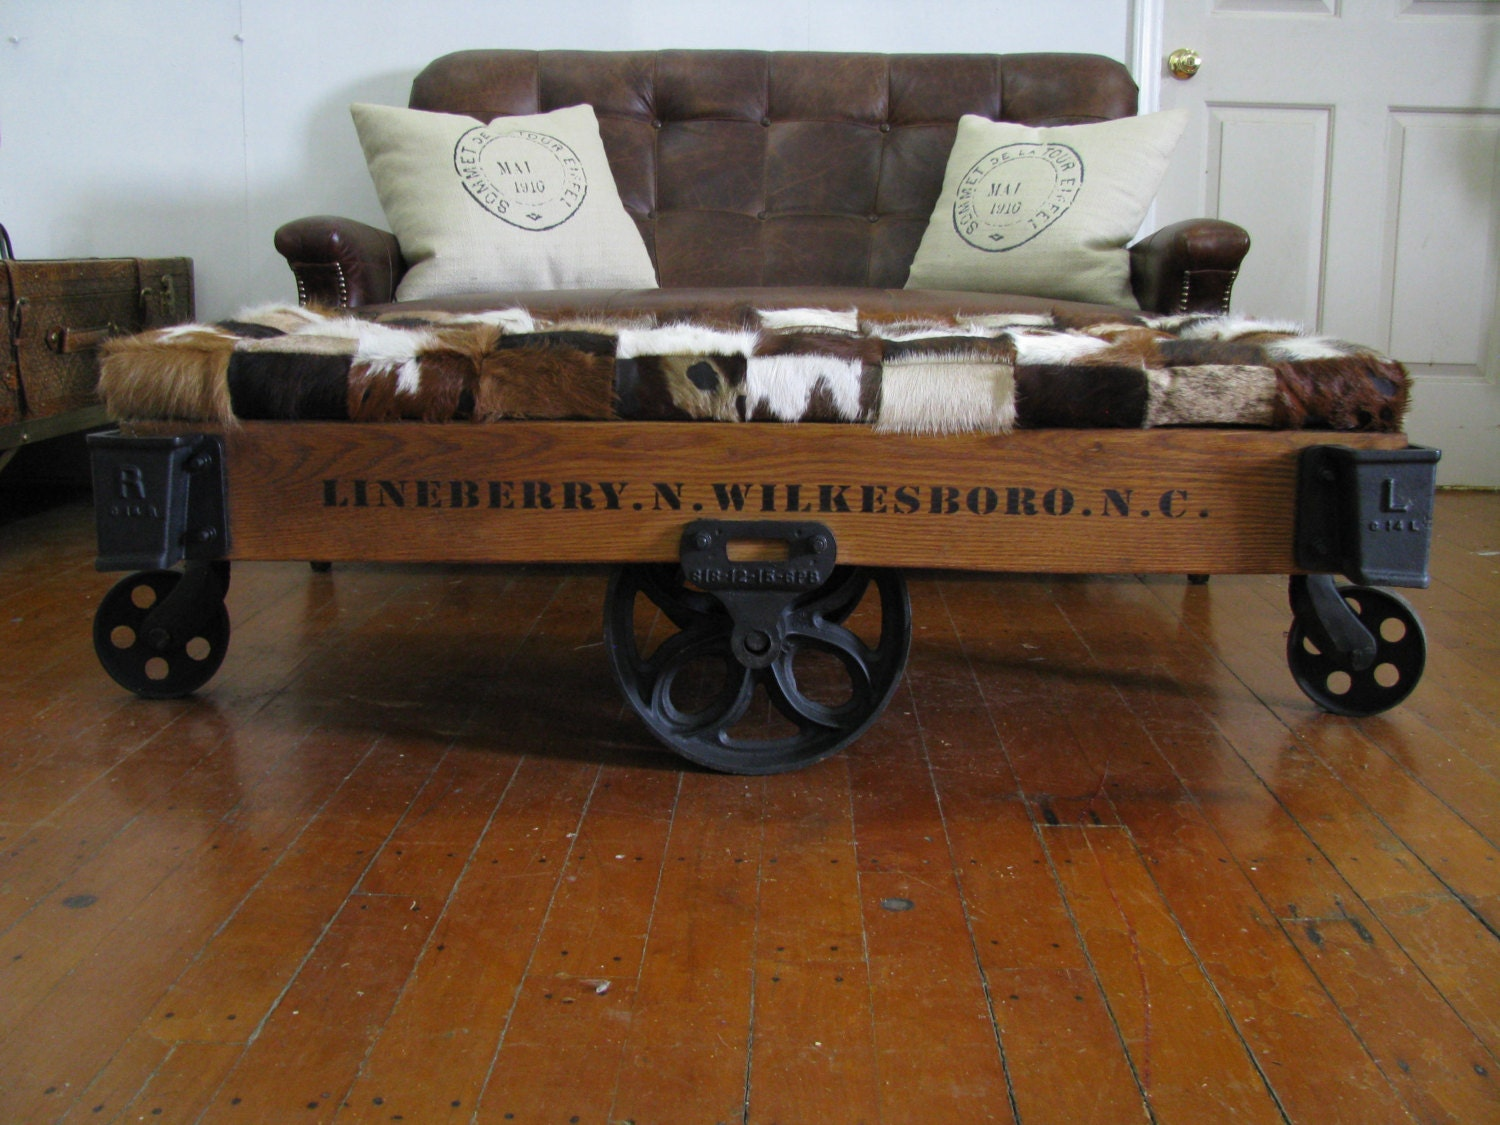 Repurposed Authentic Original Lineberry Industrial/Railroad/Factory Cart/  Bench/ Cocktail Table/ Coffee Table/ Cowhide Leather Ottoman